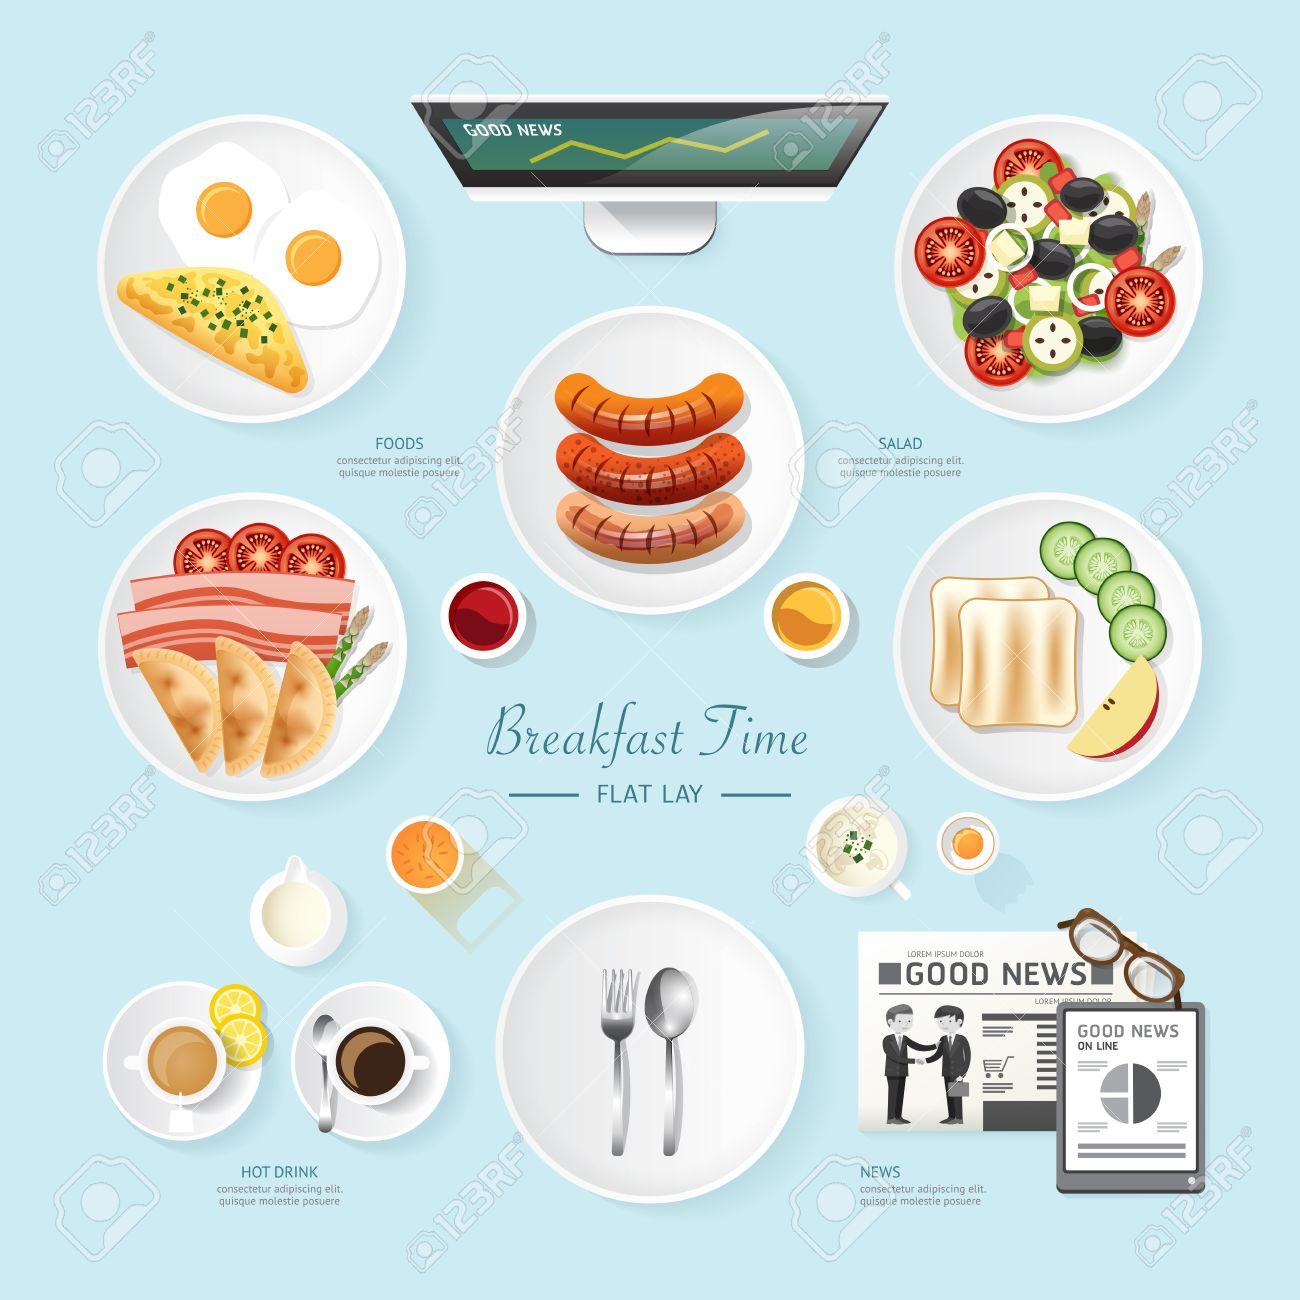 Infographic food business breakfast flat lay idea. salad,meal,toast,news Vector illustration . can be used for layout, advertising and web design. Standard-Bild - 38629038